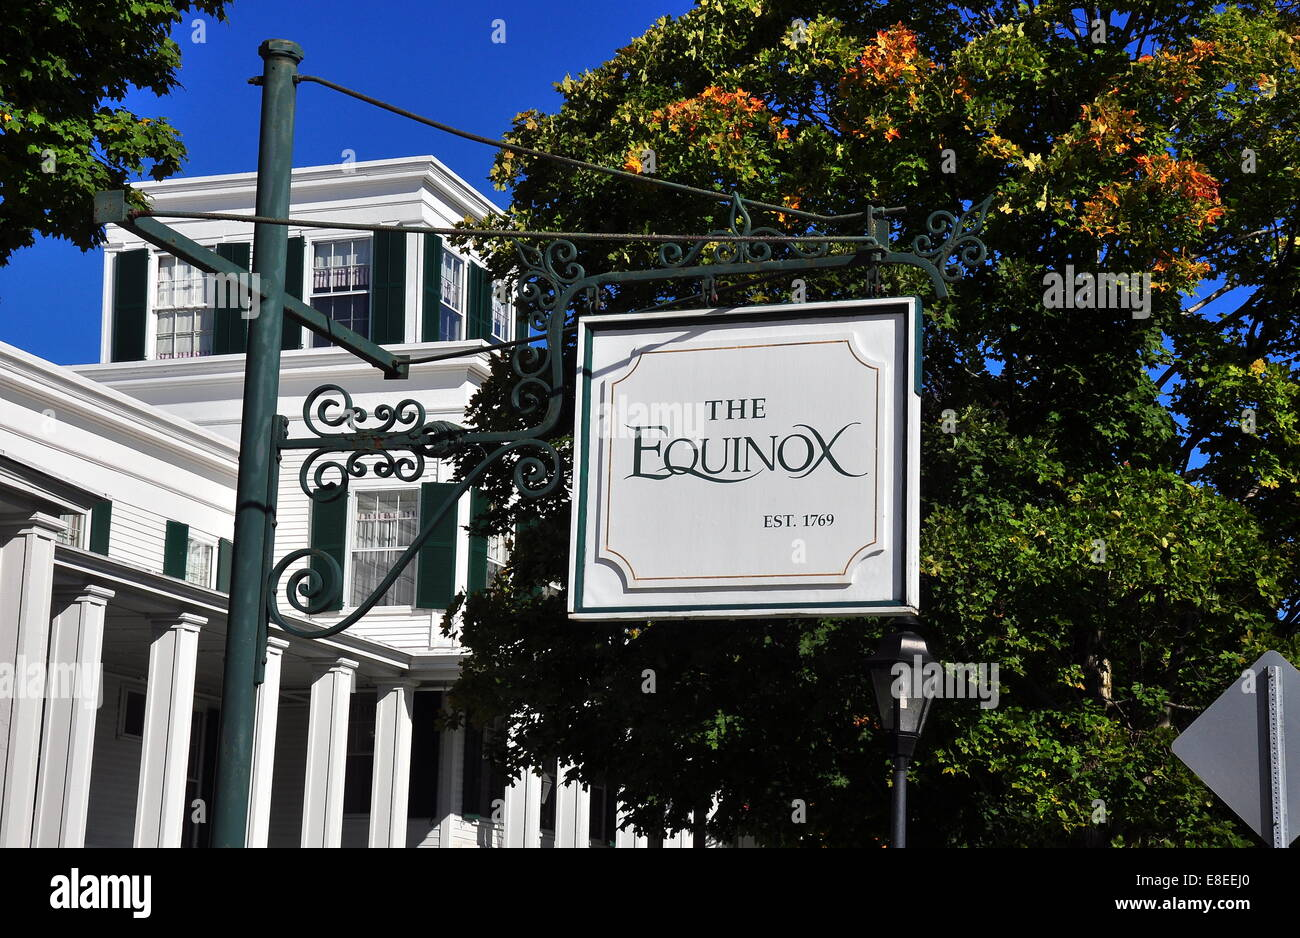 Manchester village vermont the greek revival luxury equinox hotel and resort is a village